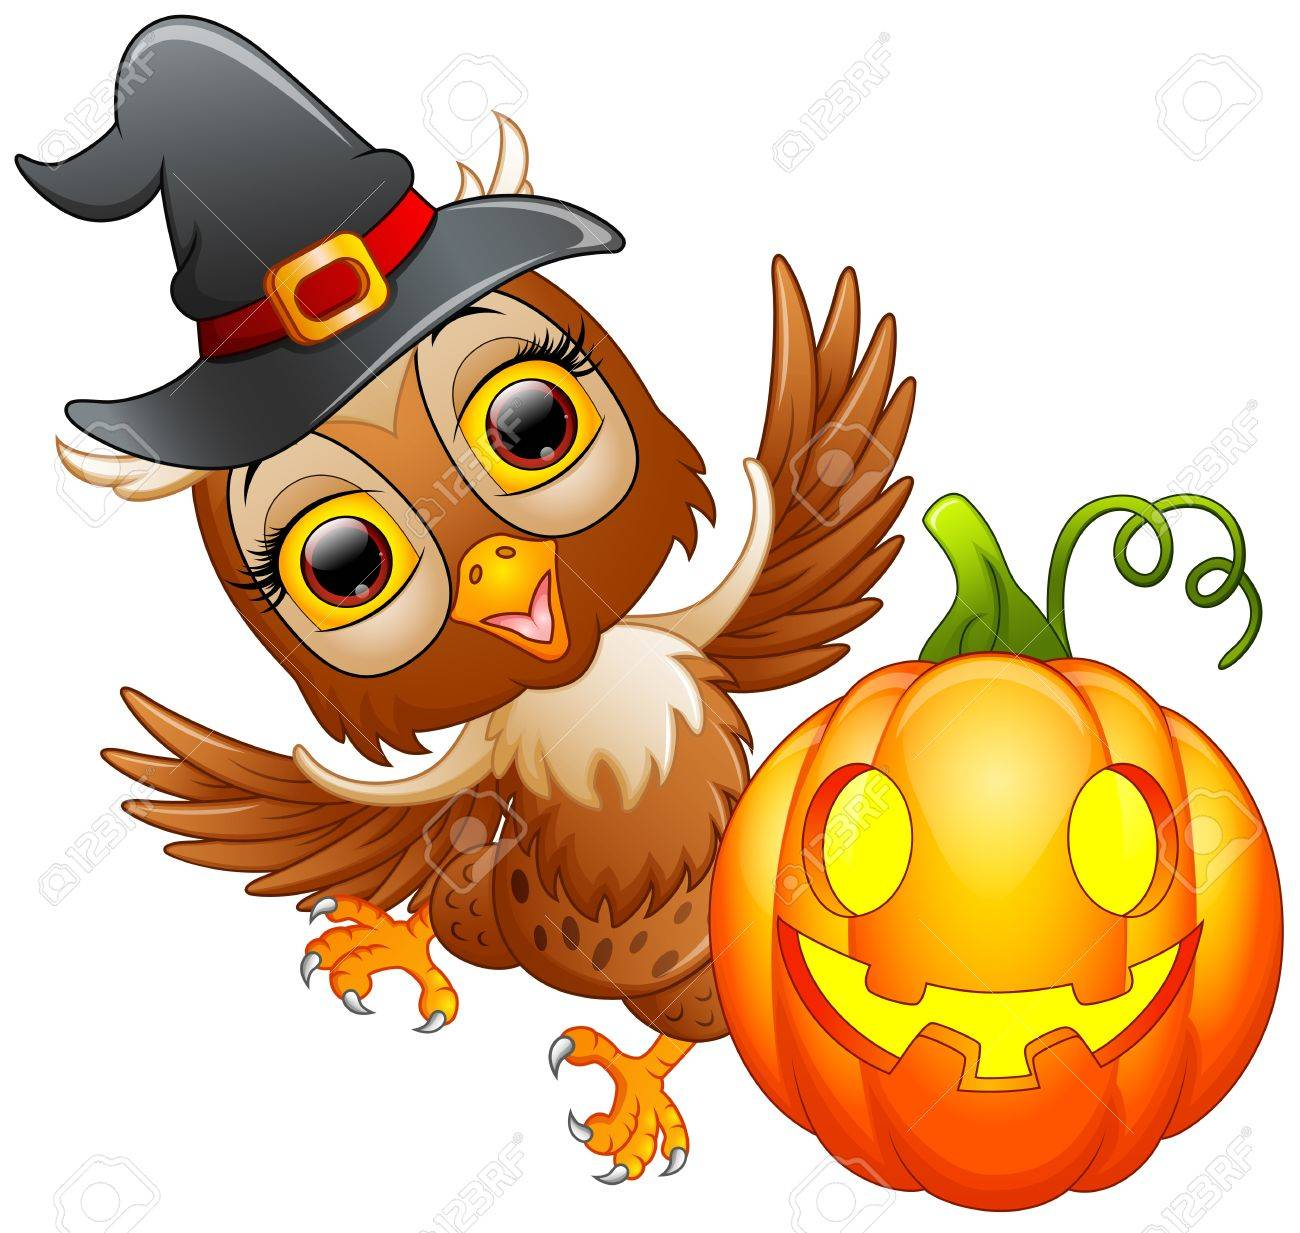 Owl cartoon with Halloween hat and pumpkin